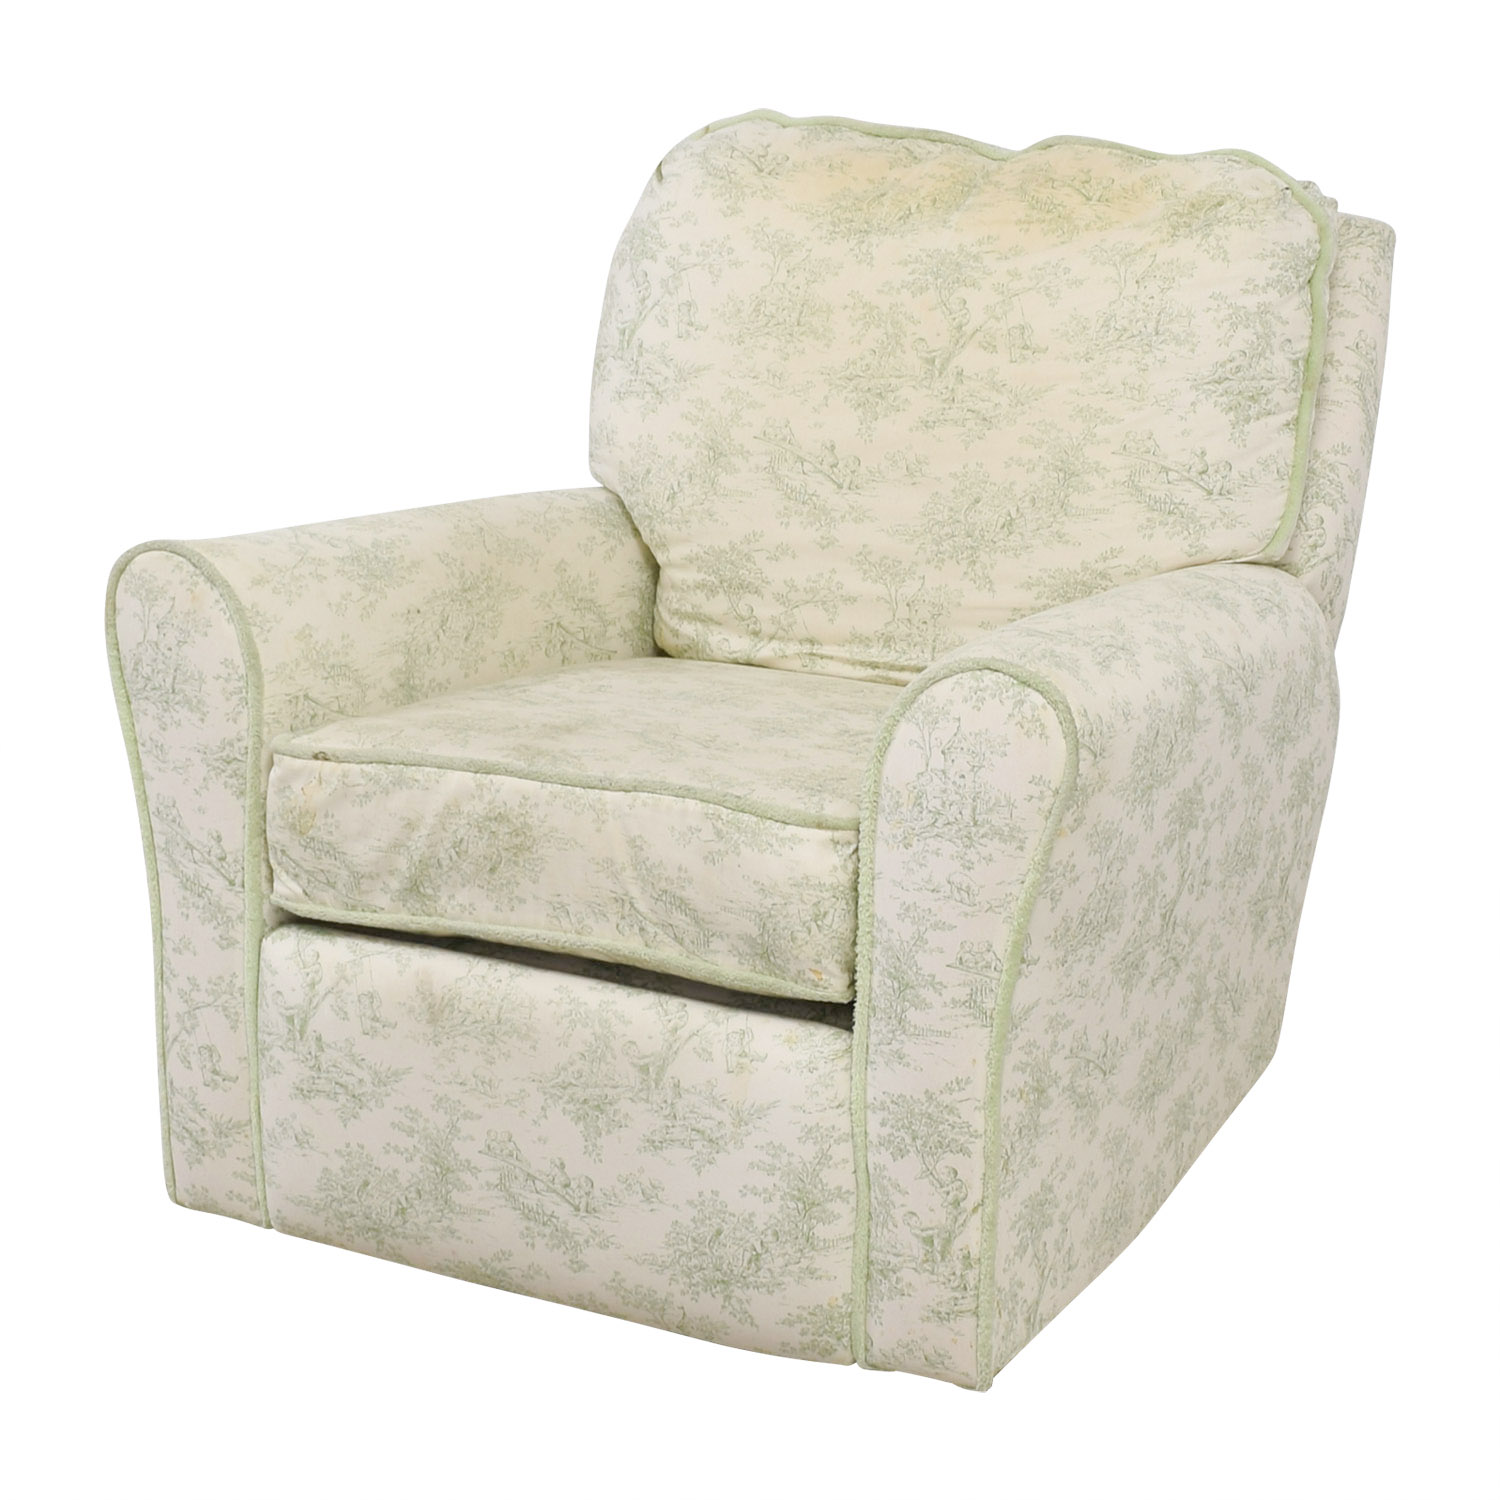 Bellini Baby Bellini Baby Children's Playground White and Green Rocking Chair Recliner nyc